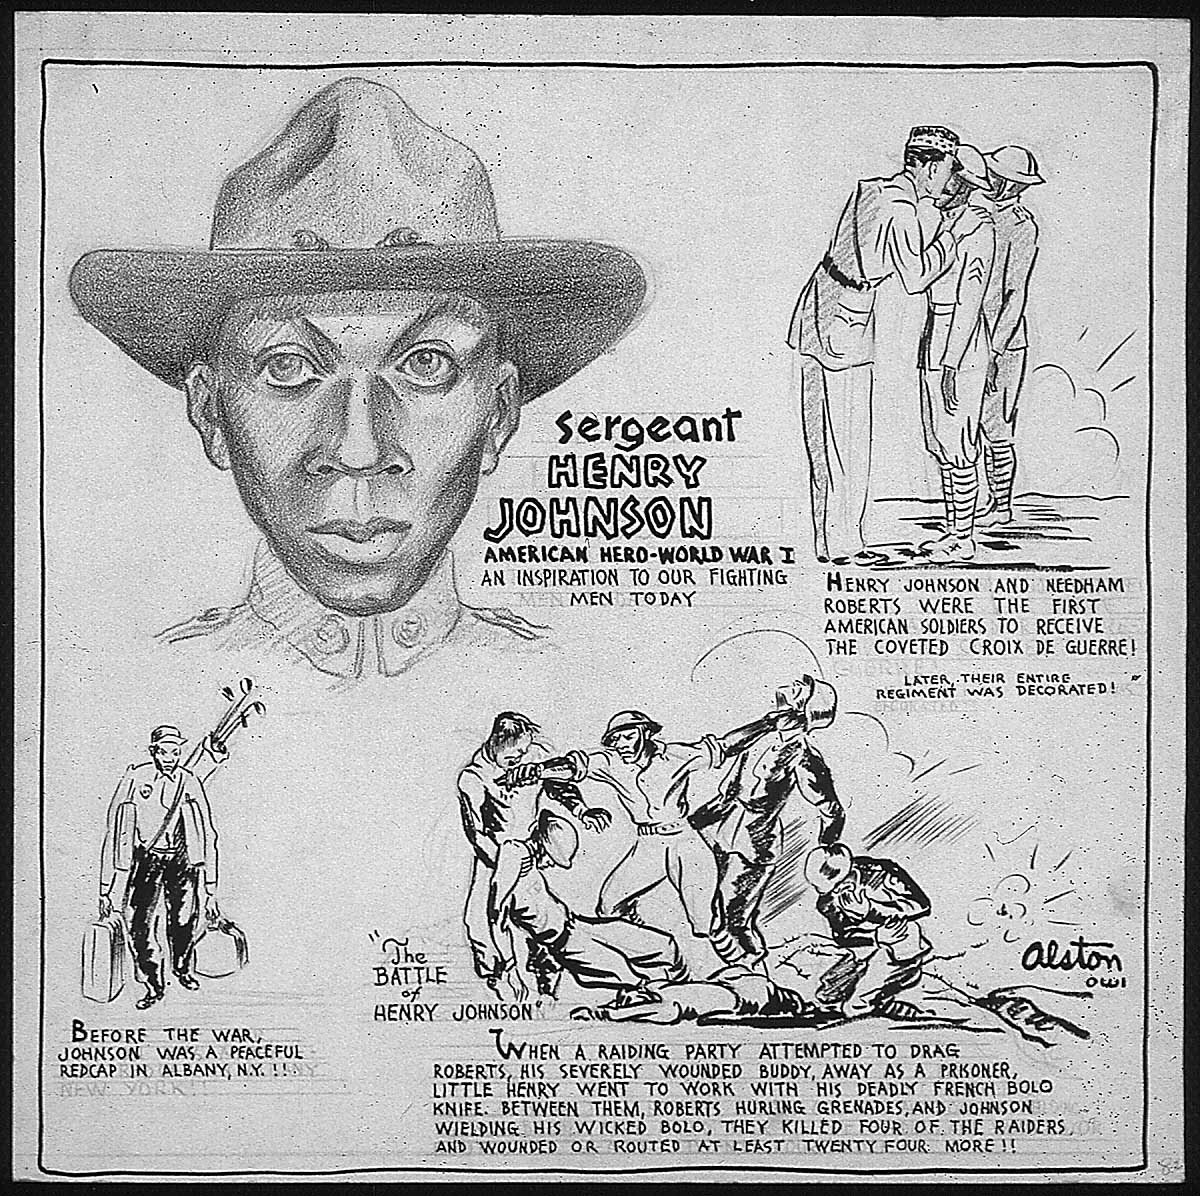 Henry Johnson biographical cartoon by Charles Alston, 1943